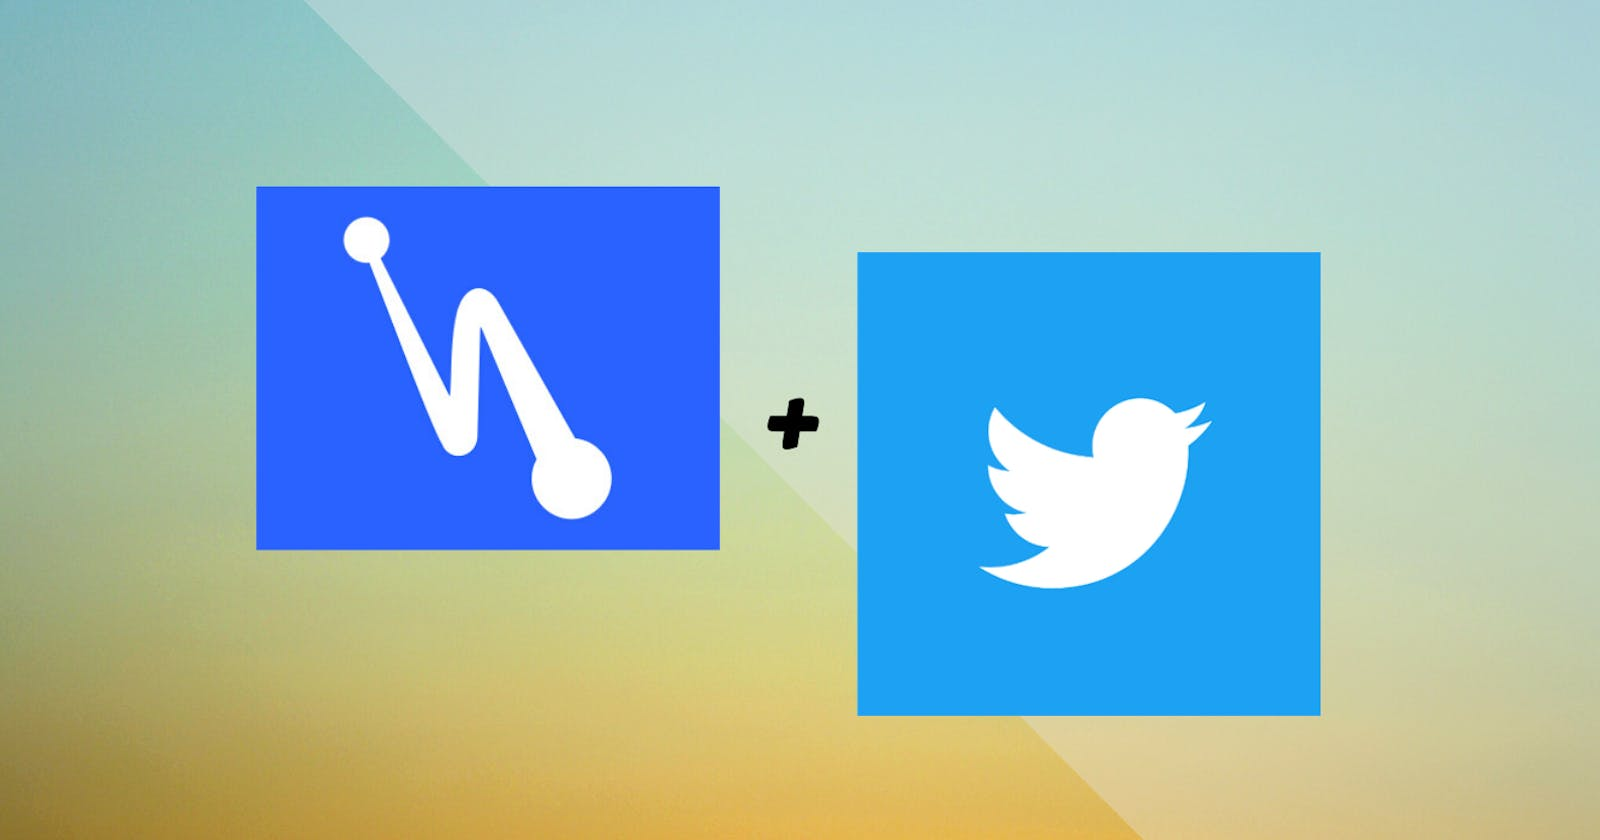 Making @Hashnode and @Twitter work well together | A 3-pronged #tip